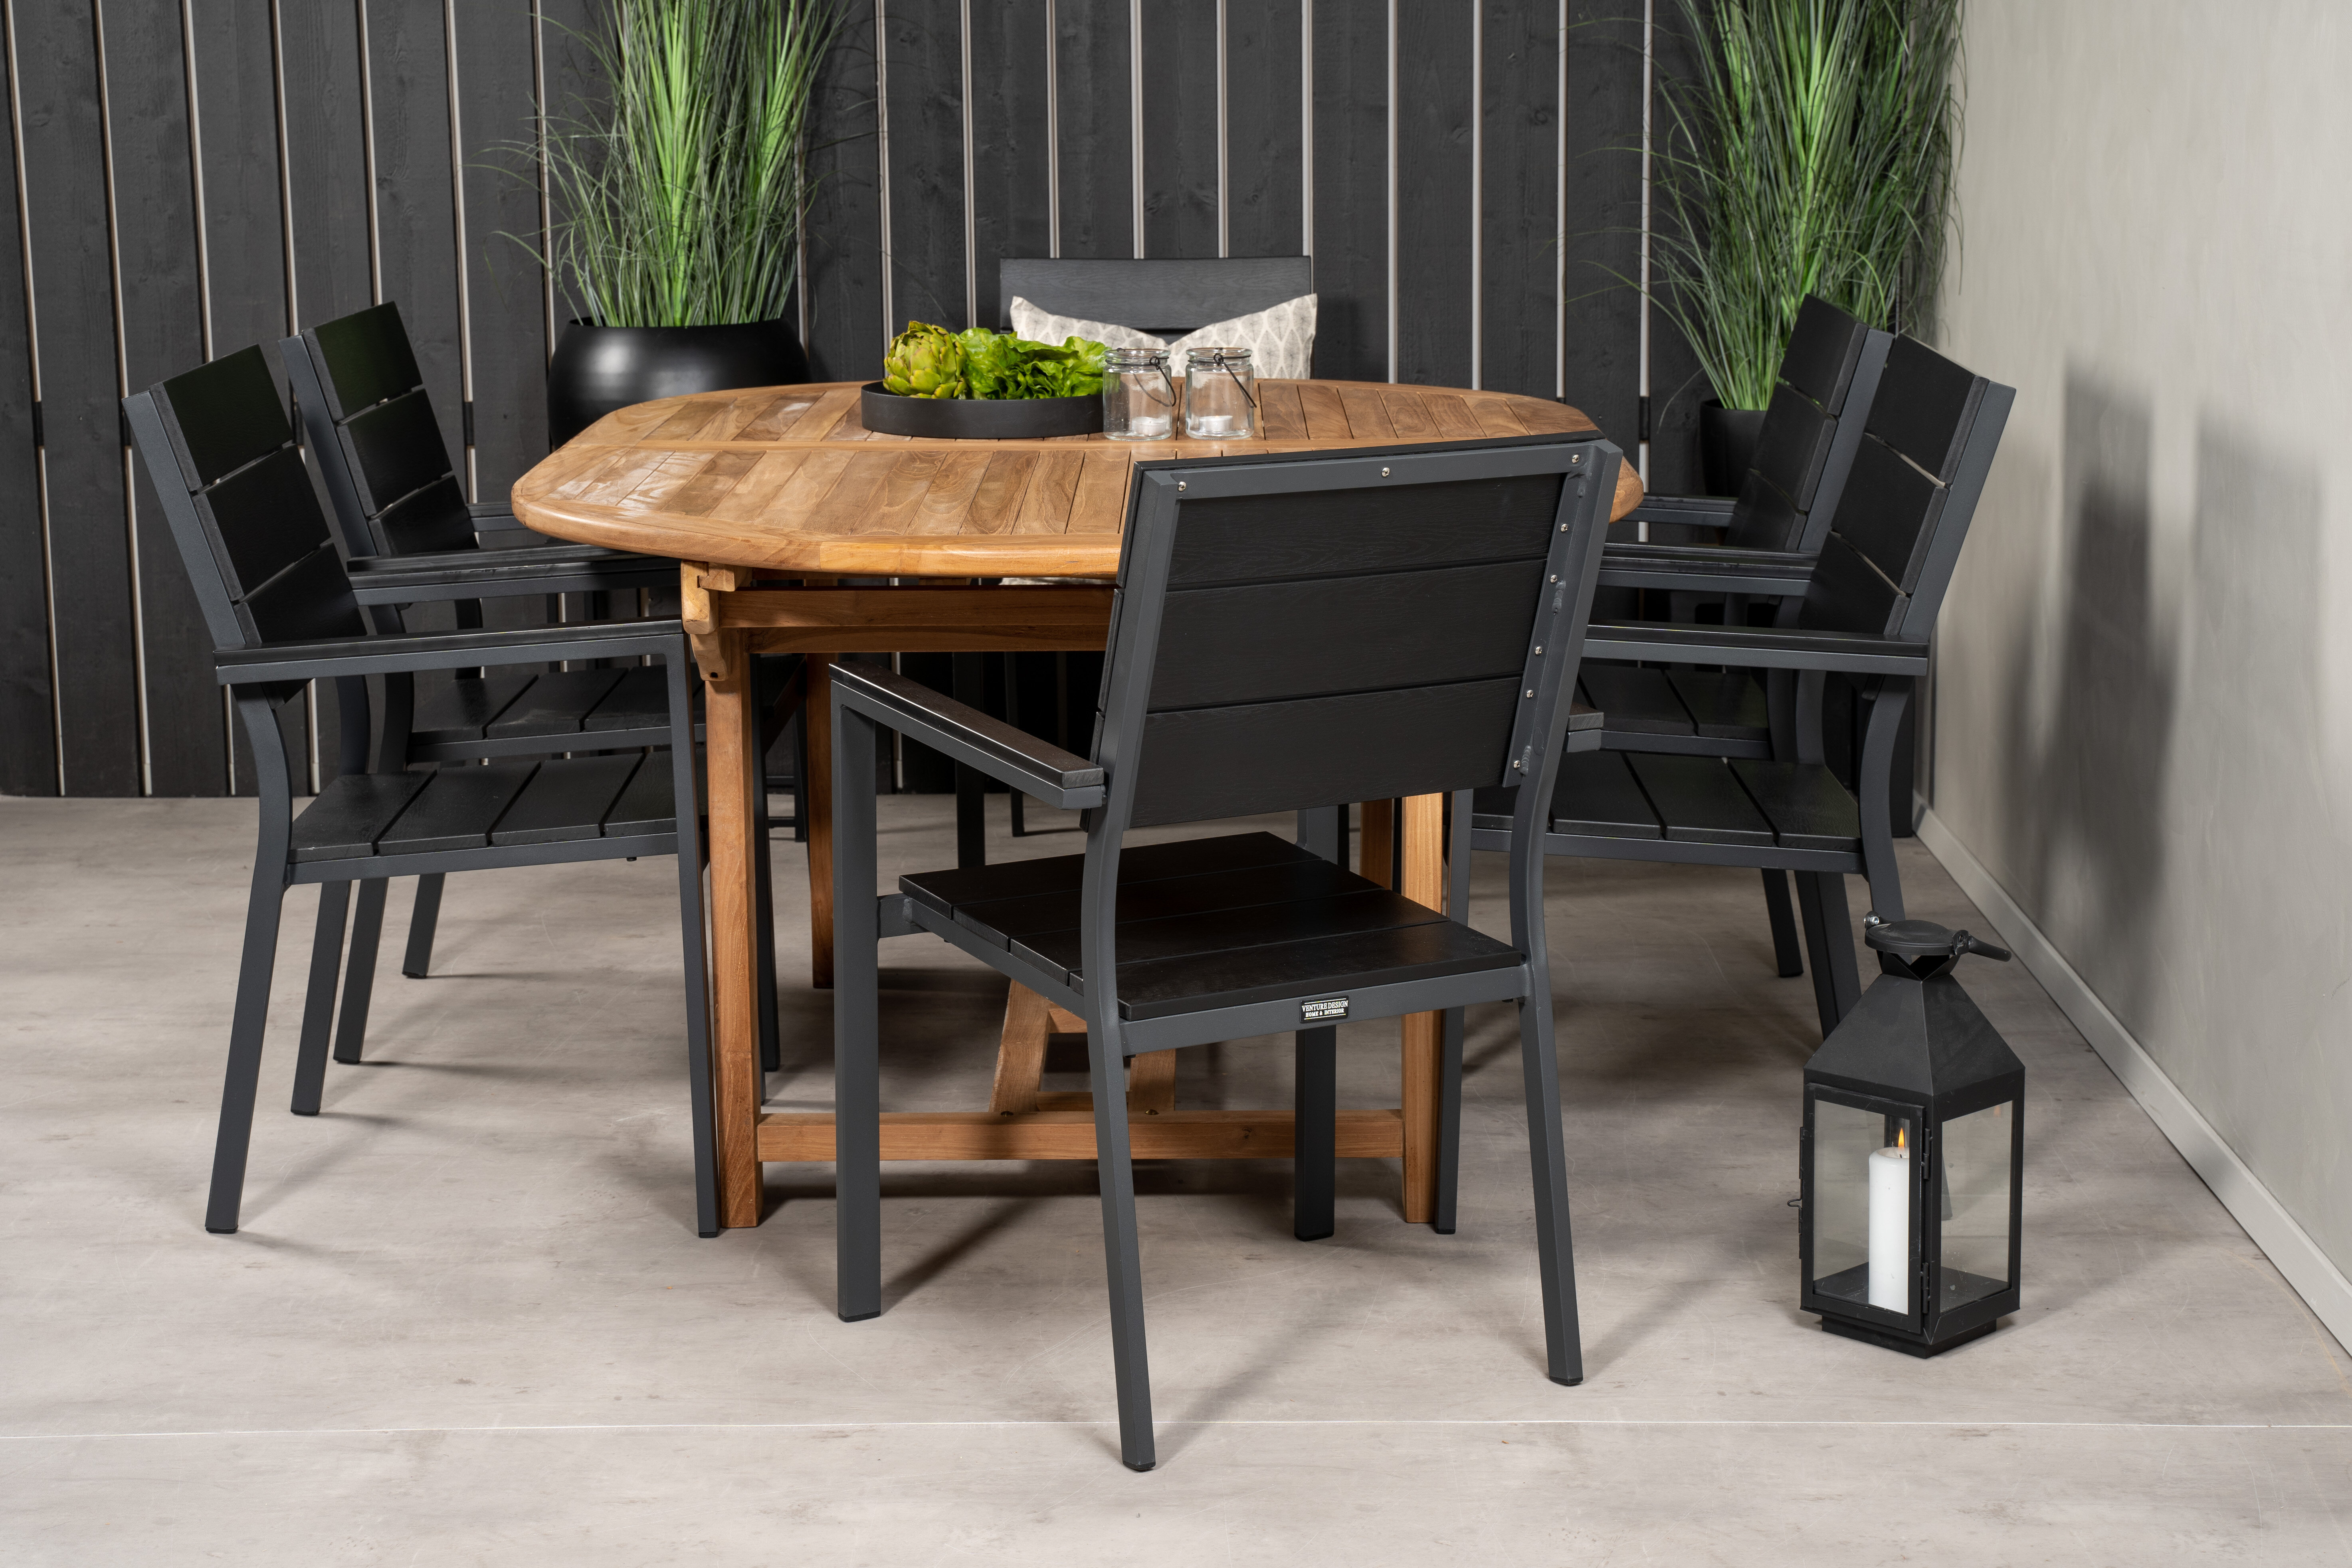 Sol 72 Outdoor Baek 6 Seater Dining Set Wayfair Co Uk